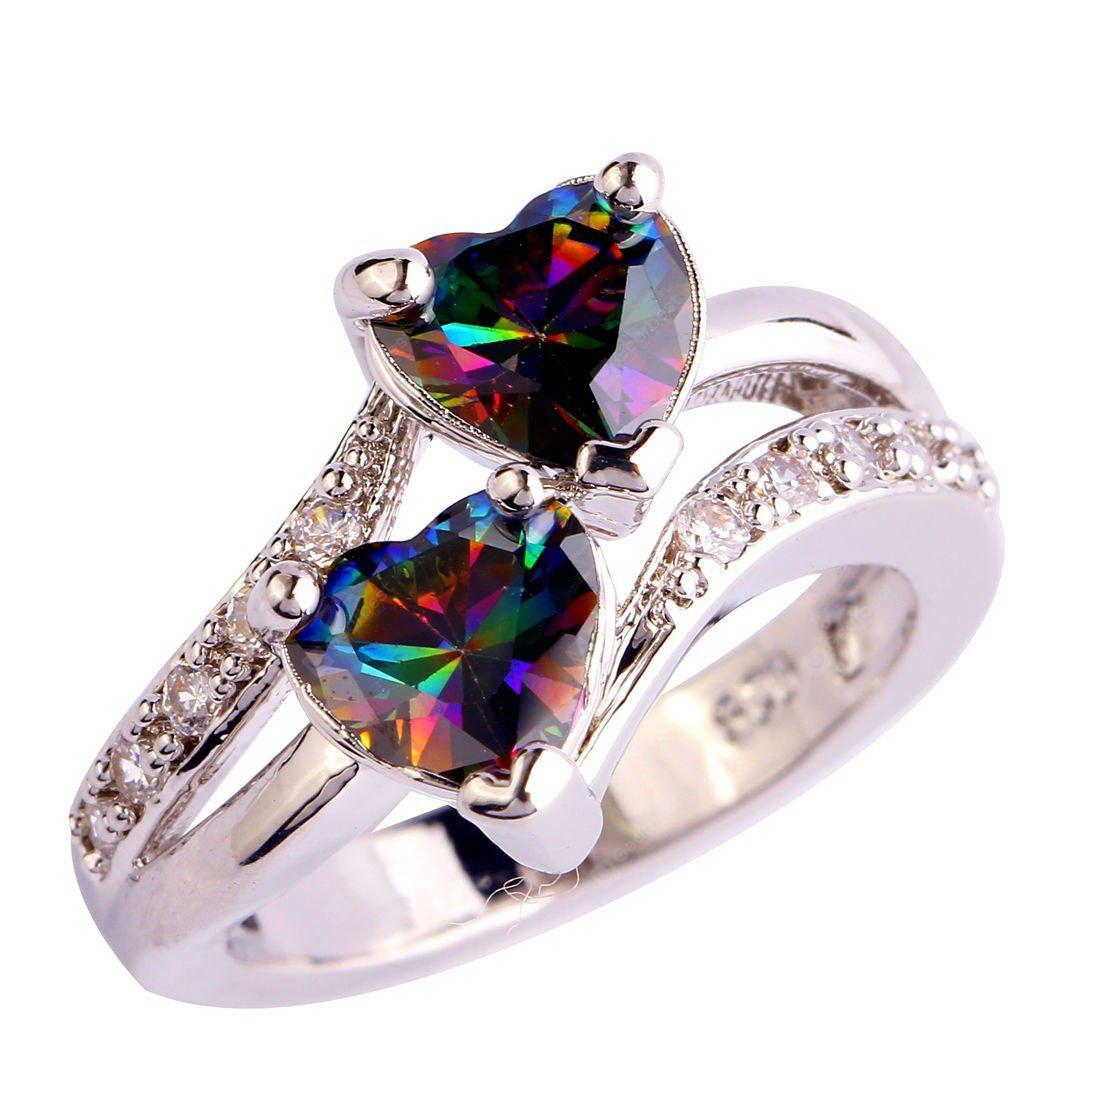 lingmei Fashion Lover Jewelry Heart Cut Rainbow & White Topaz Gemstone Silver Ring Size 5 6 7 8 9 10 11 12 13